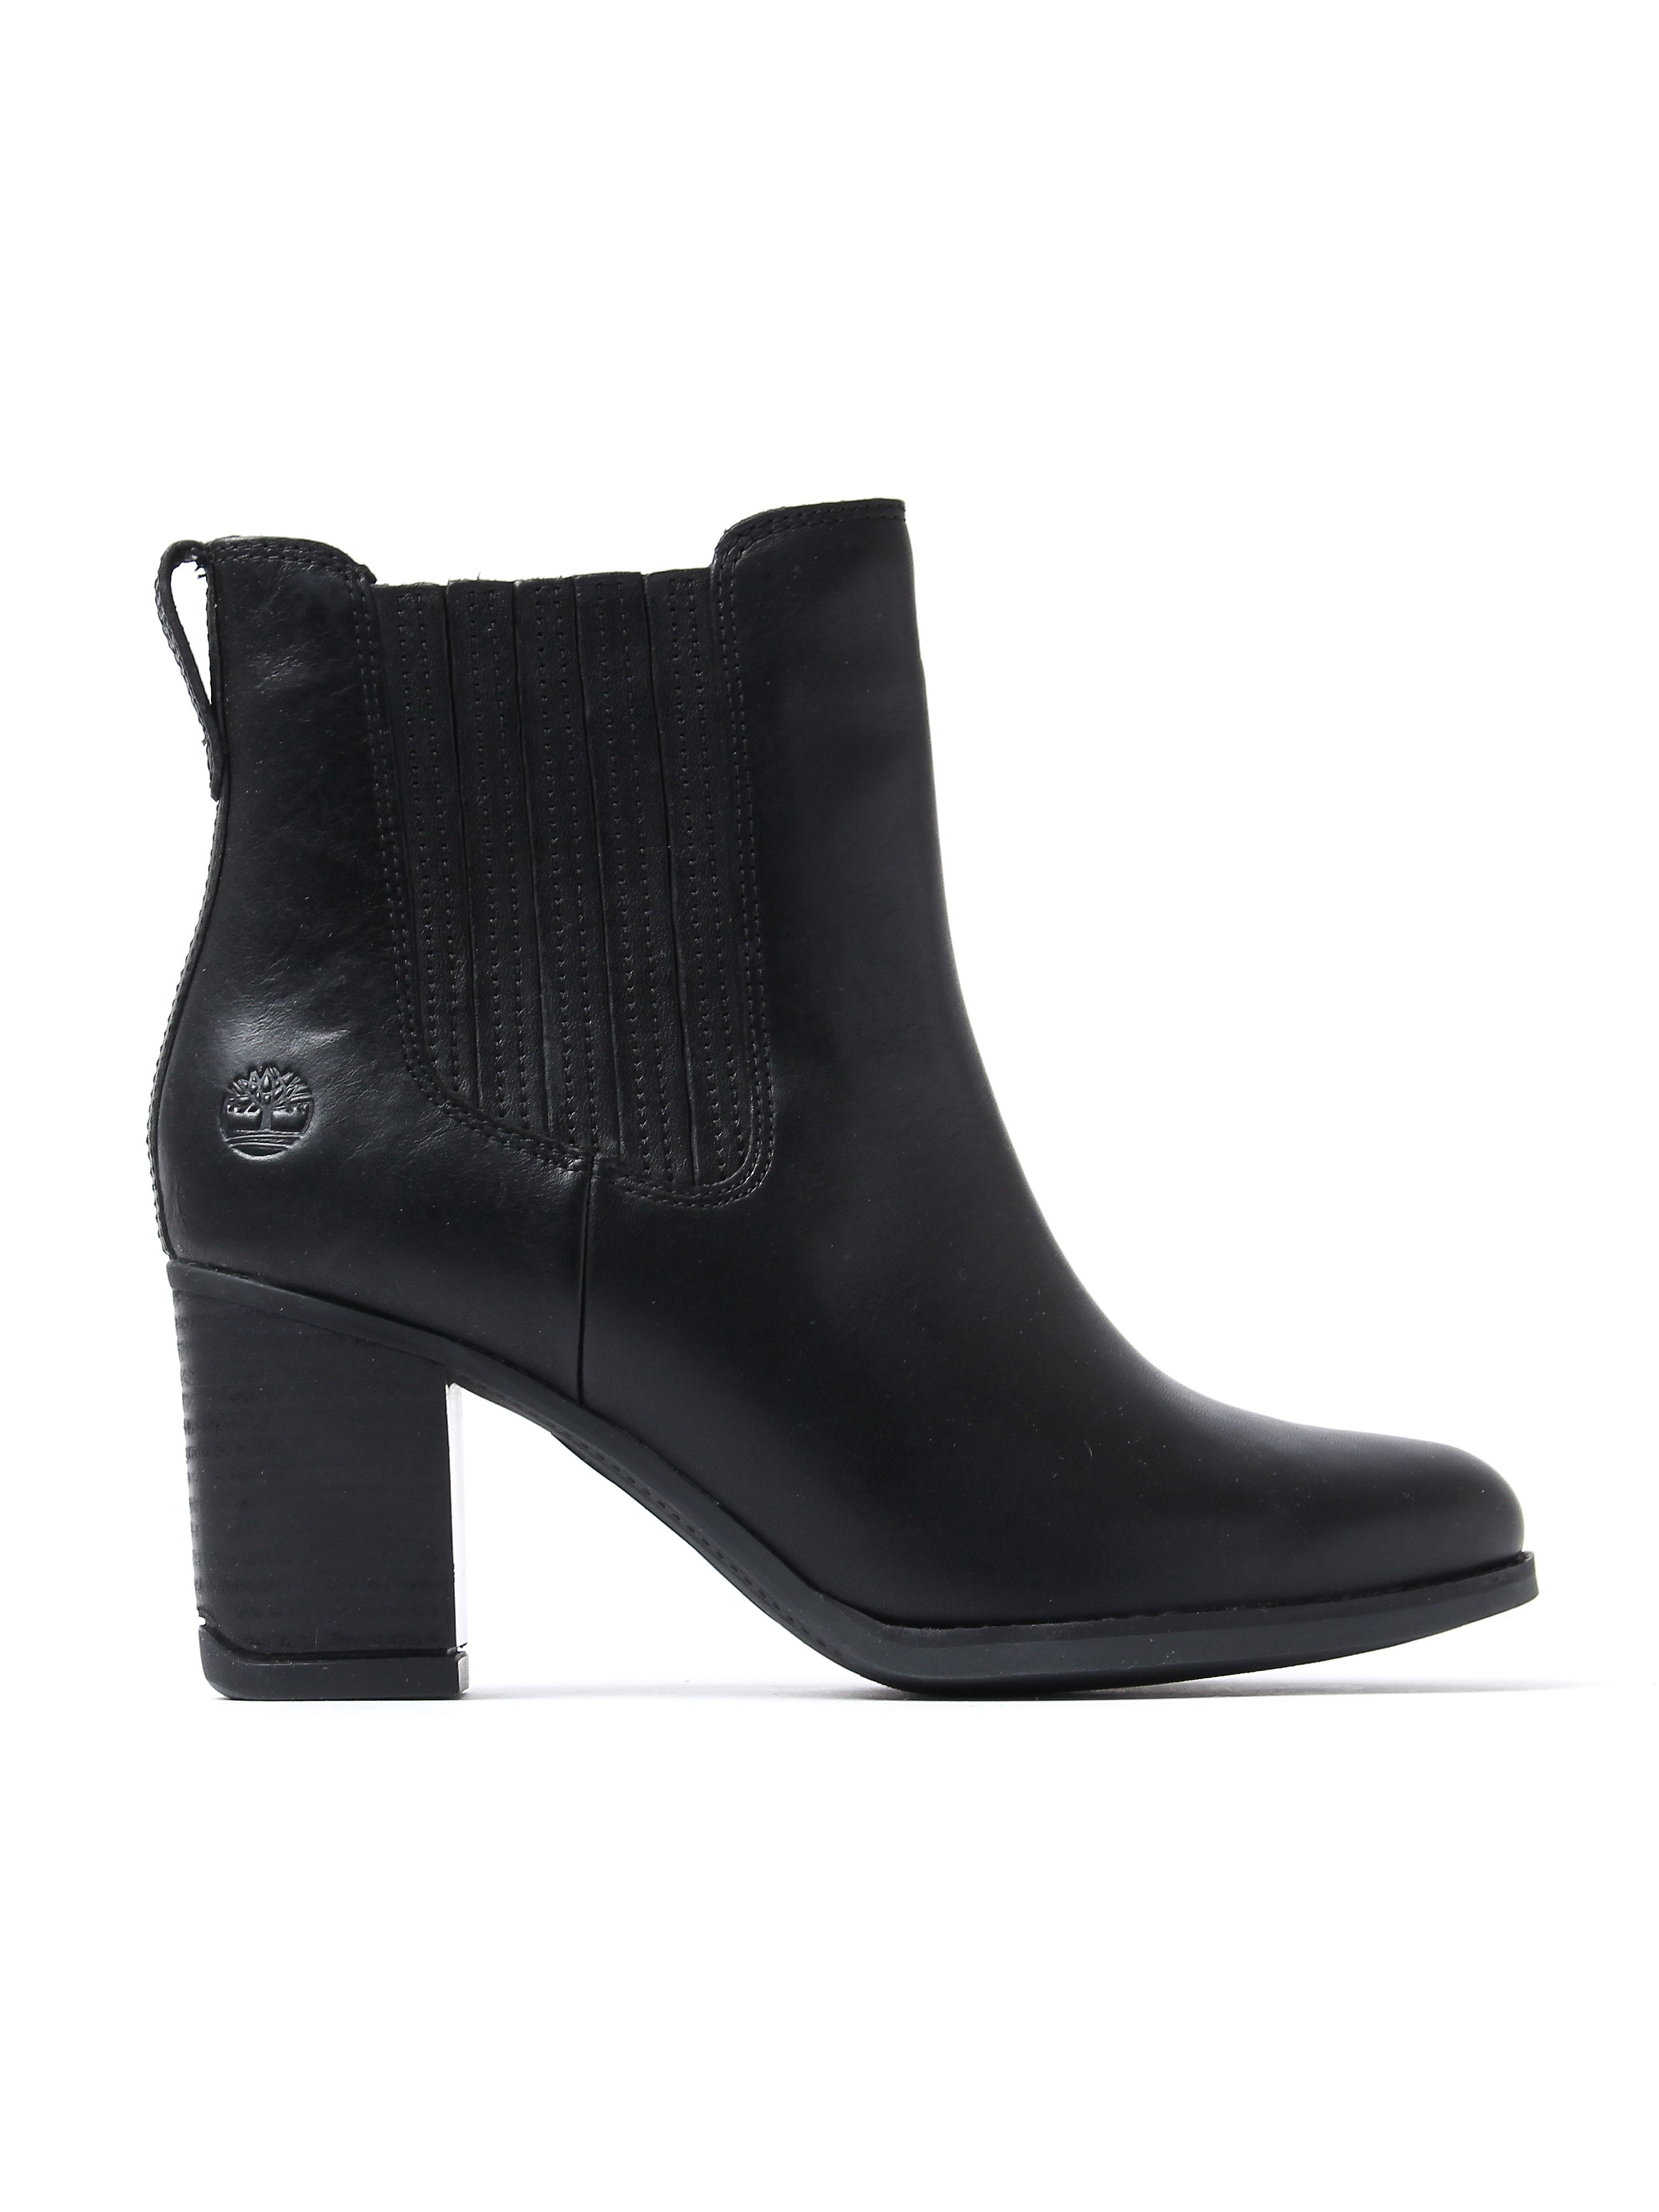 Timberland Women's Atlantic Heights Chelsea Boots - Black Leather